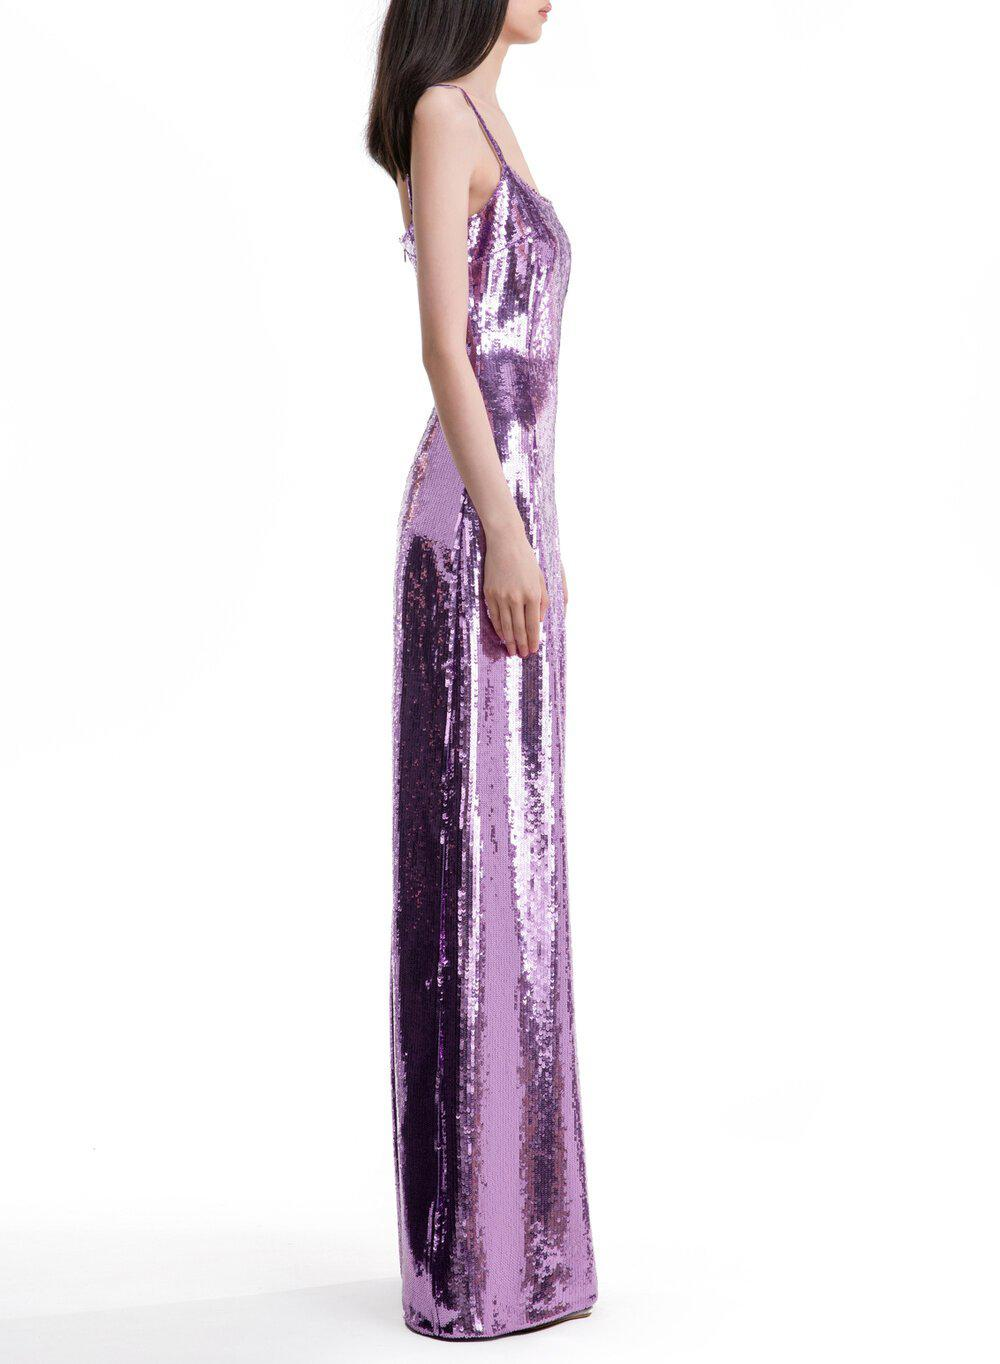 AURORA GOWN LILAC TULLE 6